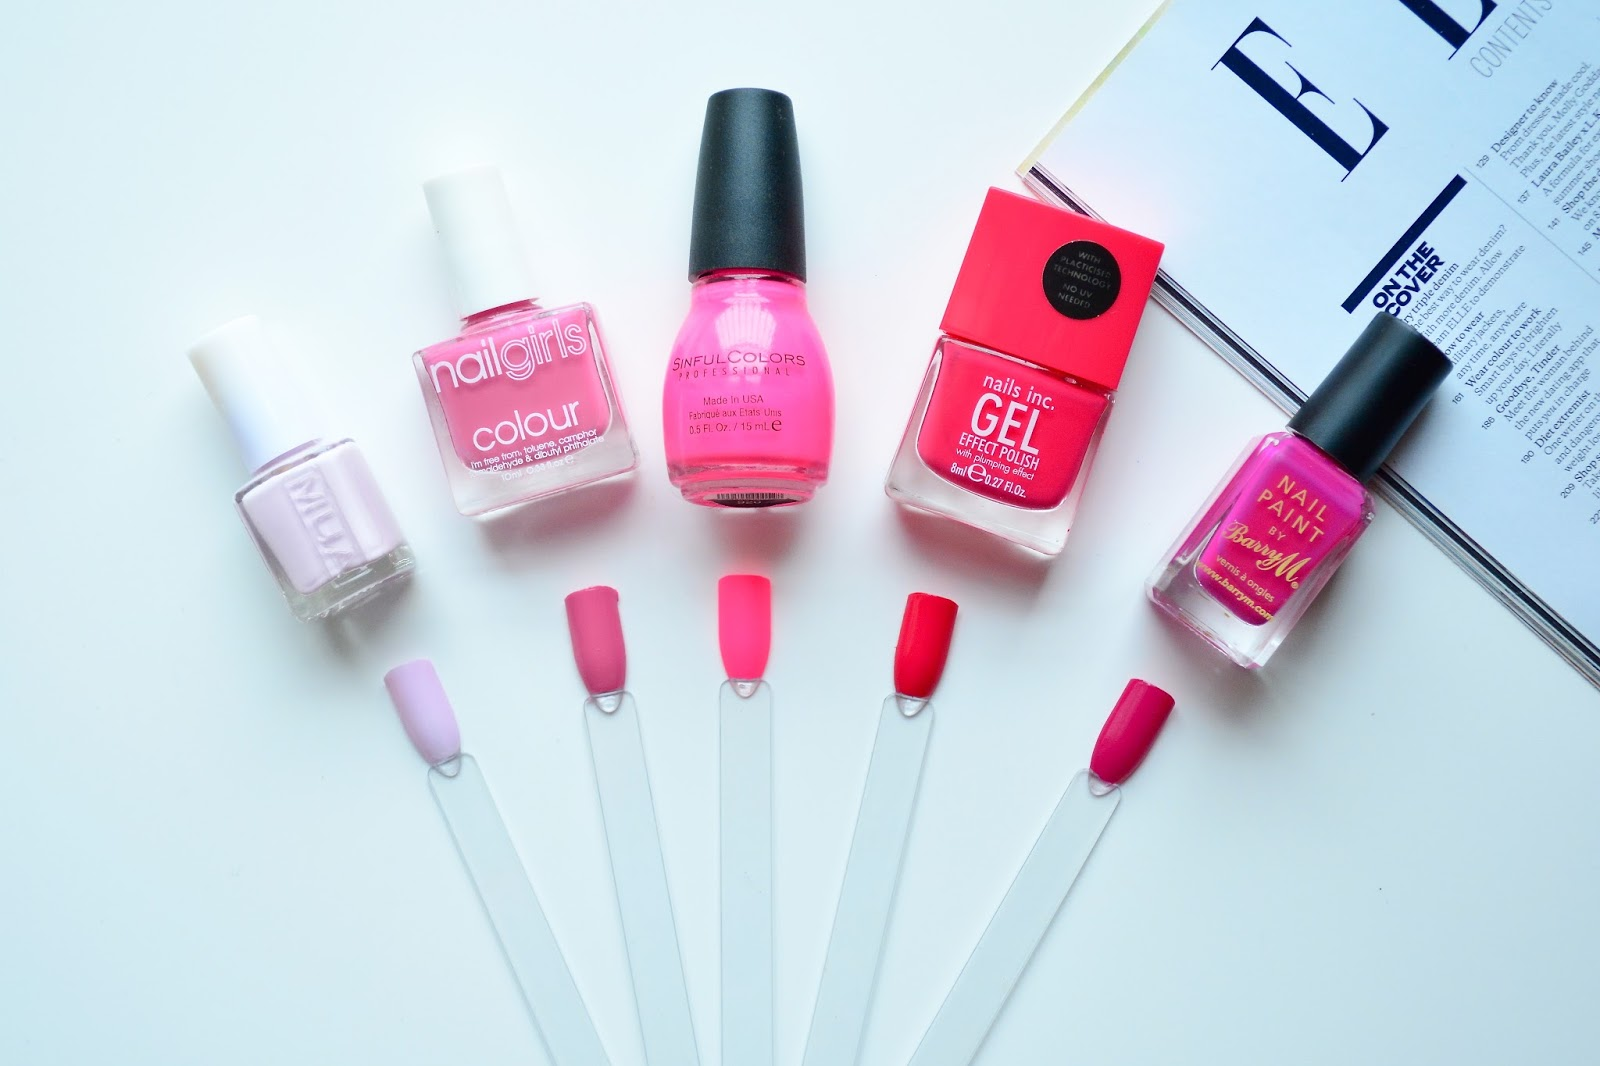 Nail Polish, Pink Nail Polish, Lipstick, Barry M, Nails Inc, MUA Lilac Nail Polish, Nail Girls Nail Polish, Sinful Colors, Pink